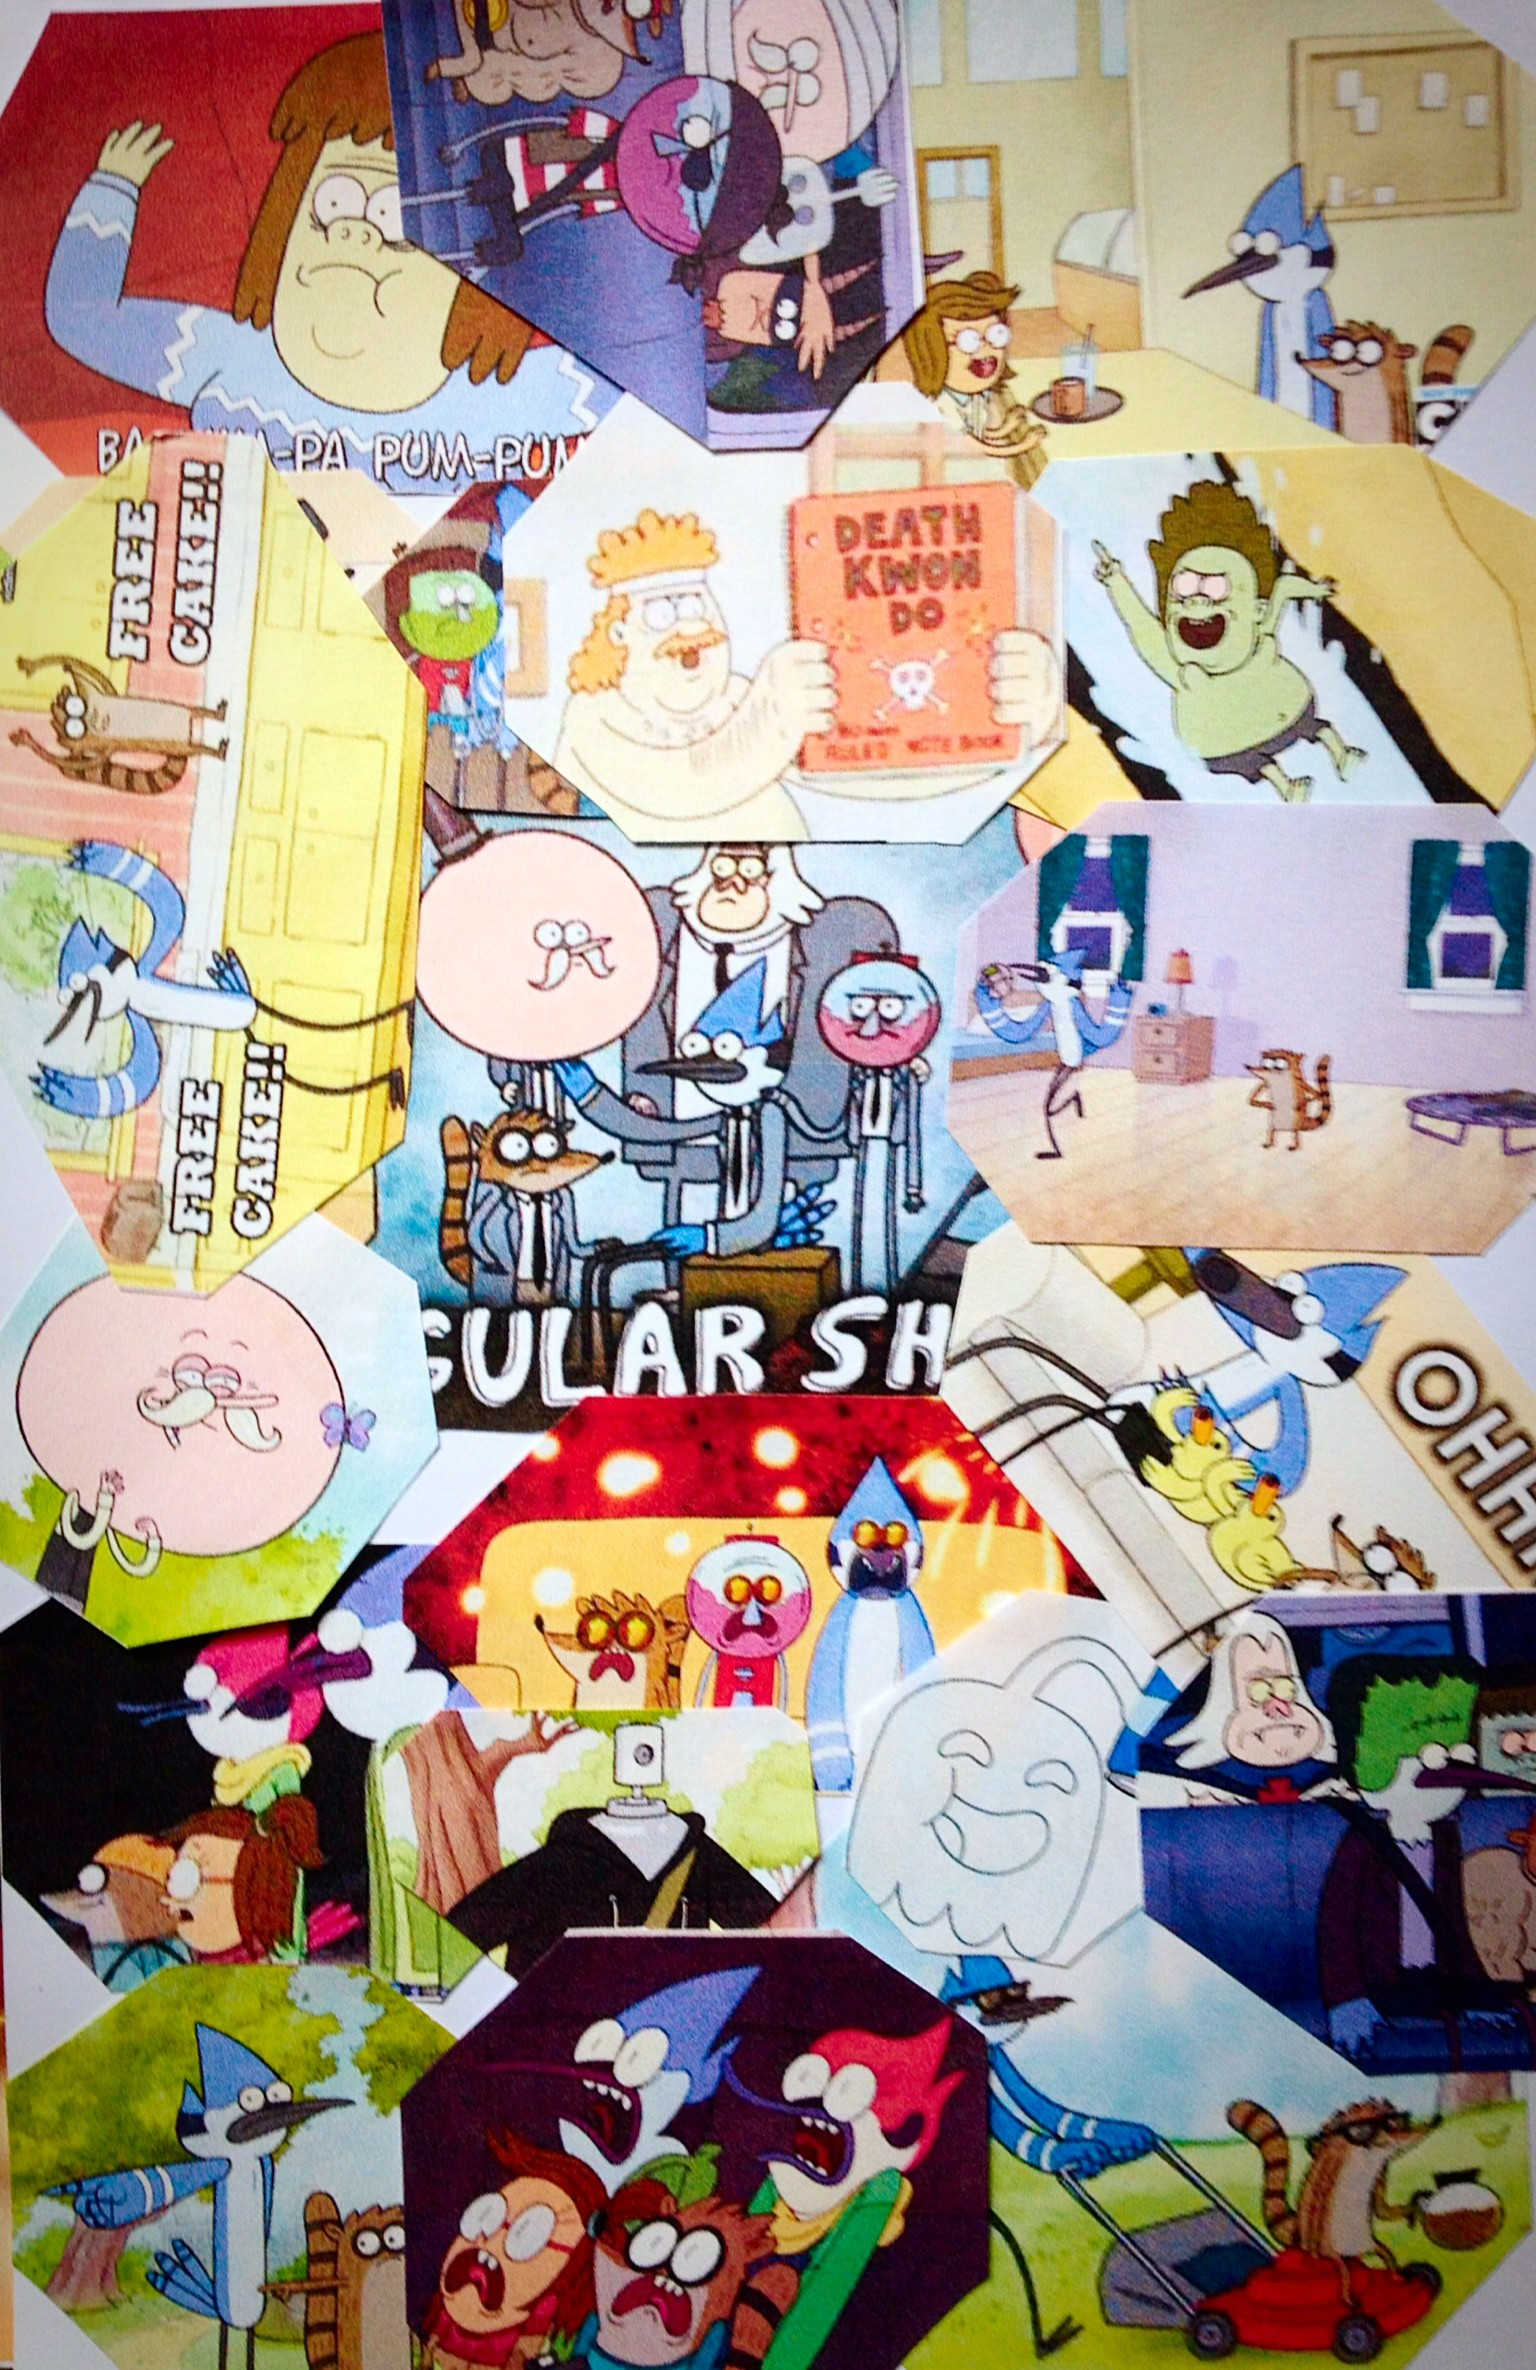 1536x2370 Regular Show Collage by warmteardrops Regular Show Collage by warmteardrops